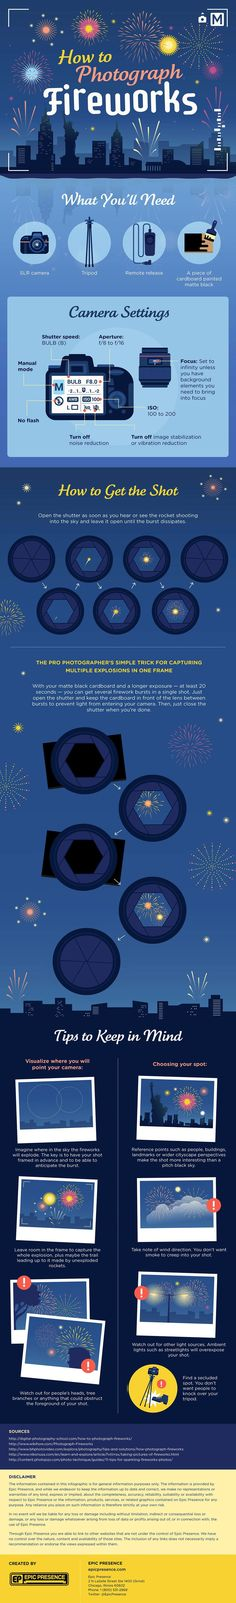 Best Camera Settings for Fireworks Photography Infographic. Topic: New Year, 4th of July, firecracker, 2017, photographer, DLSR, #Cameras